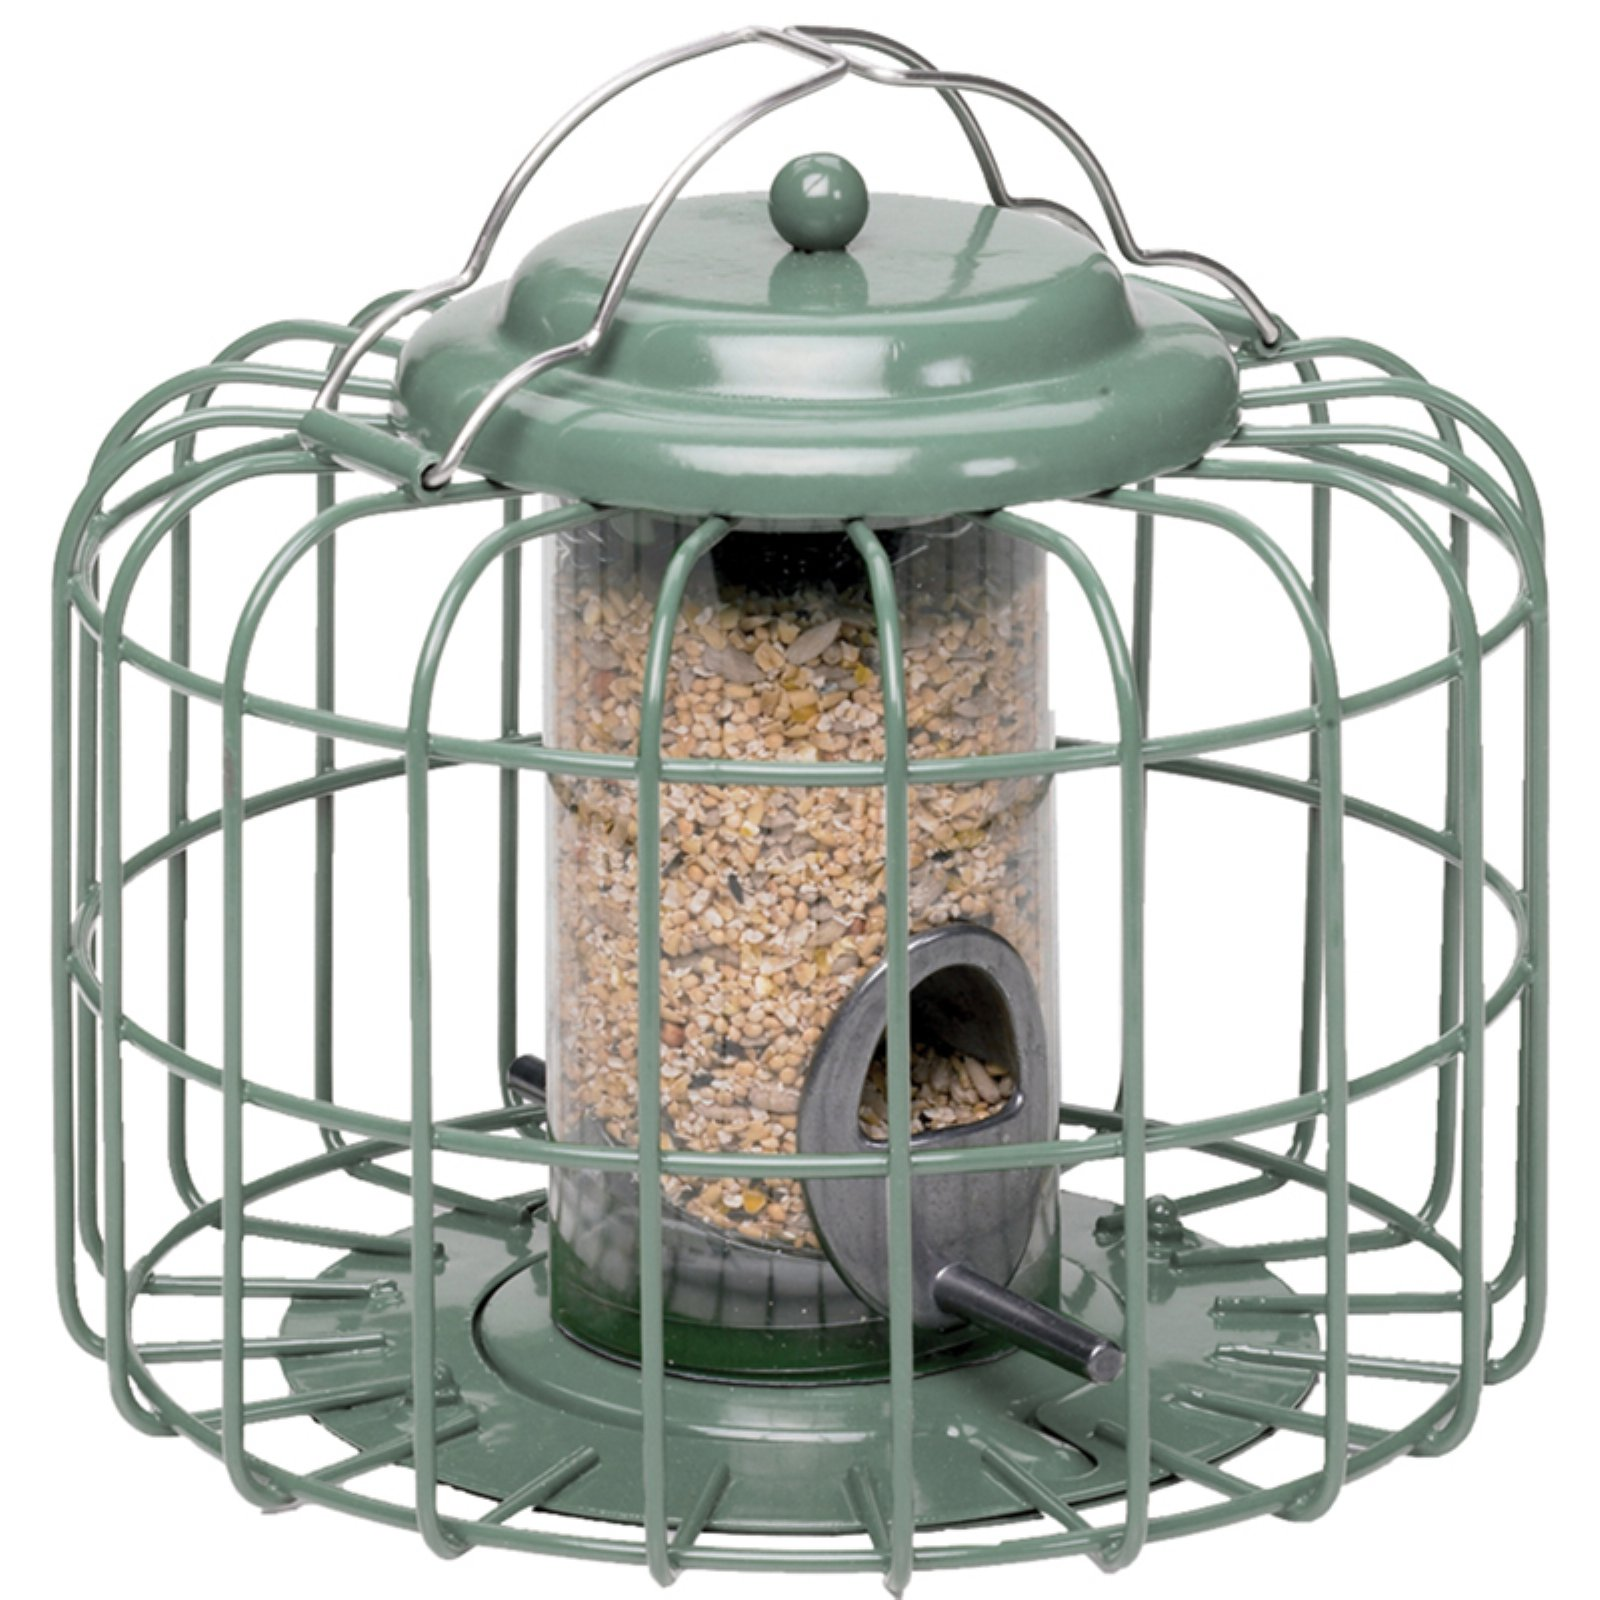 The Nuttery Mini Round Squirrel Resistant Seed Bird Feeder, Ocean Green